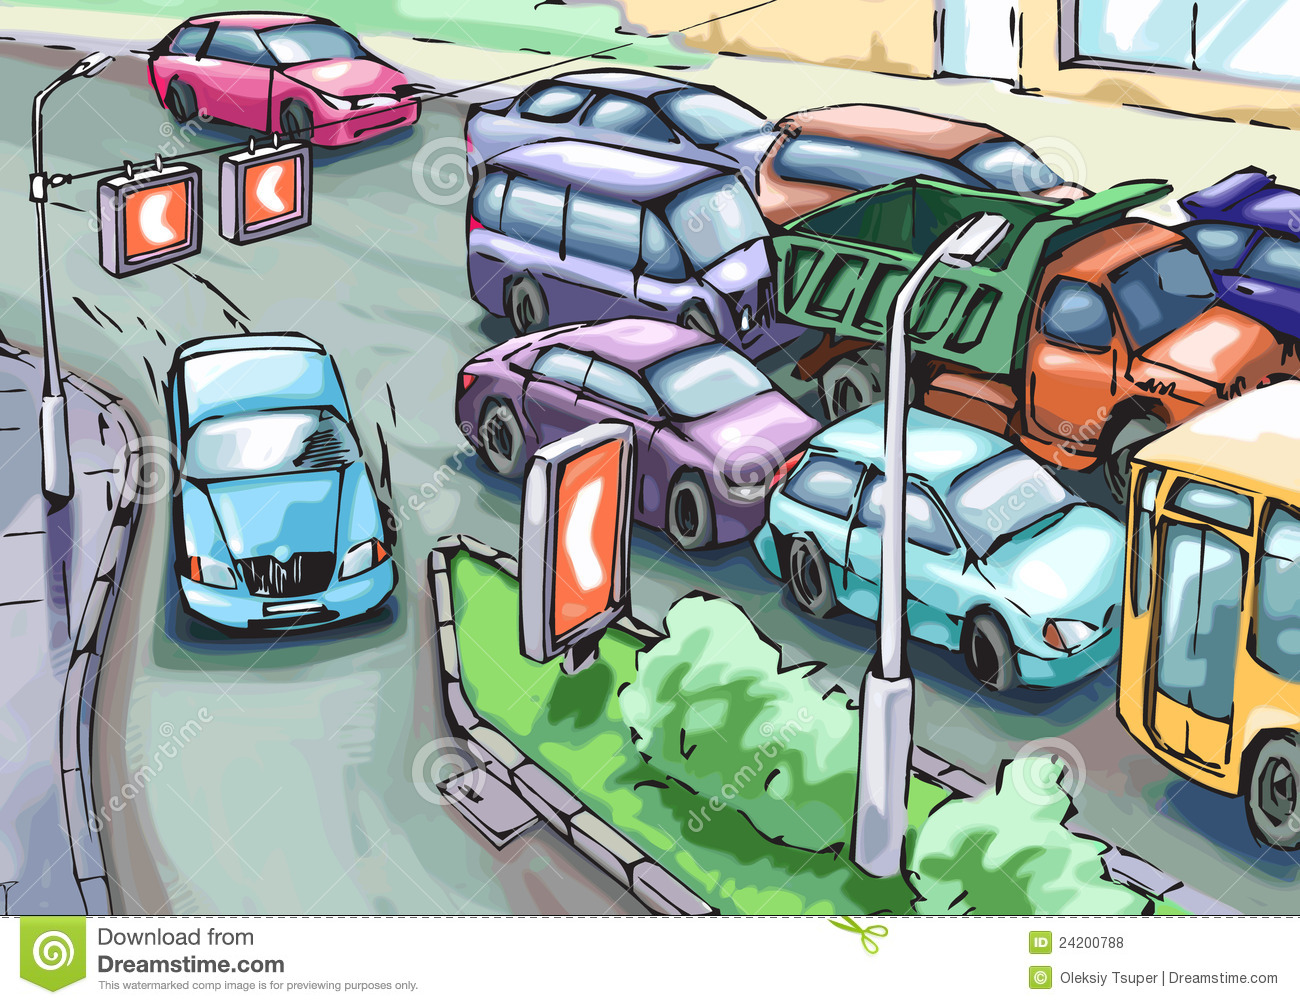 Traffic clipart #2, Download drawings